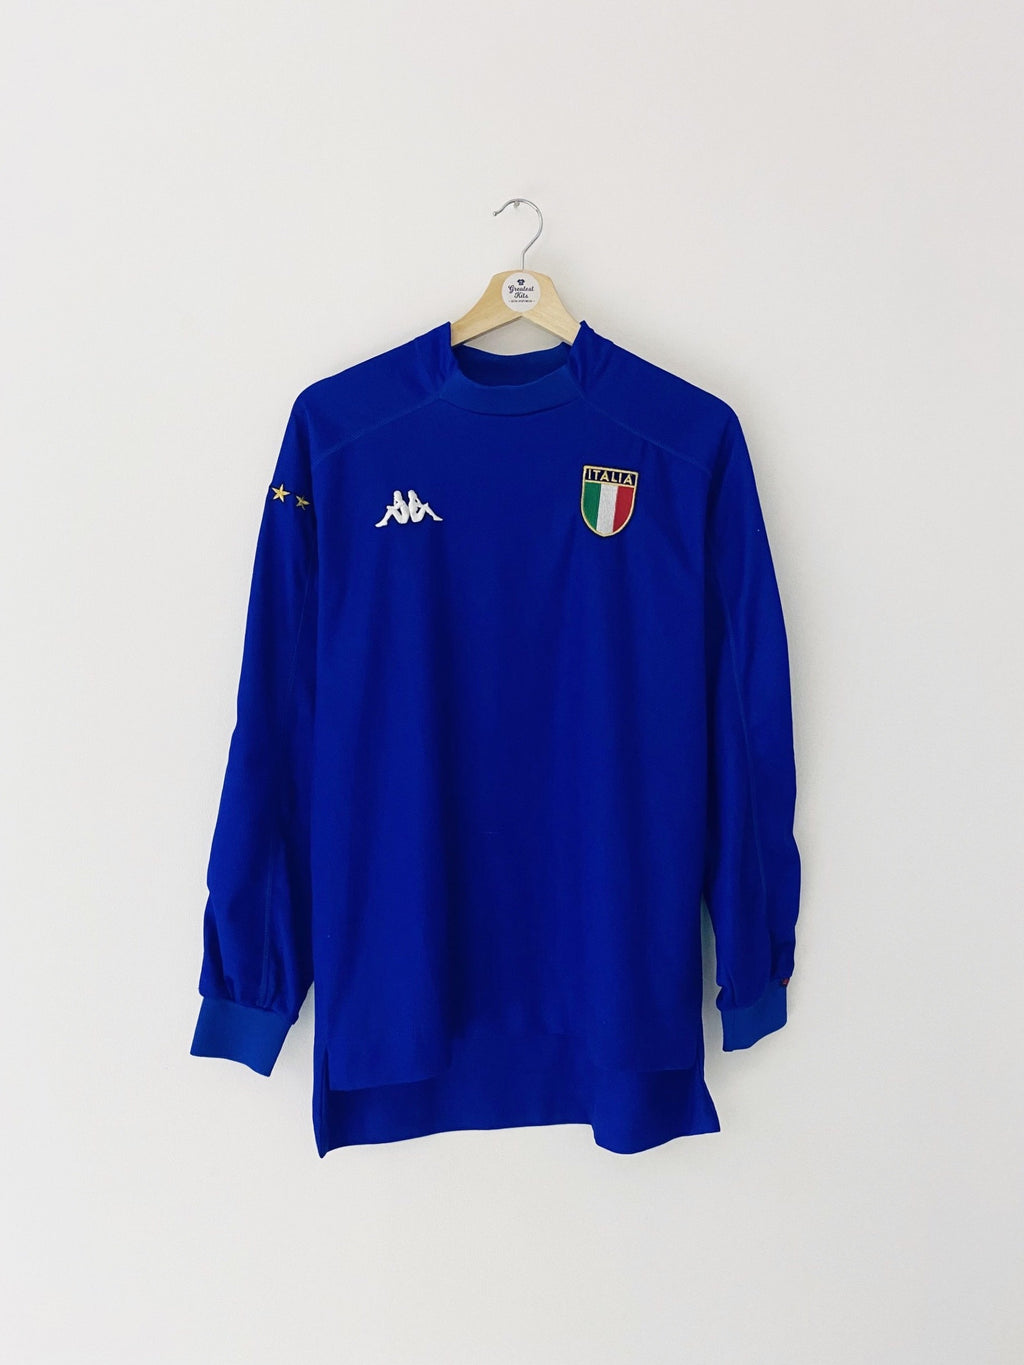 1998/99 Italy Home L/S Shirt (S) 7.5/10